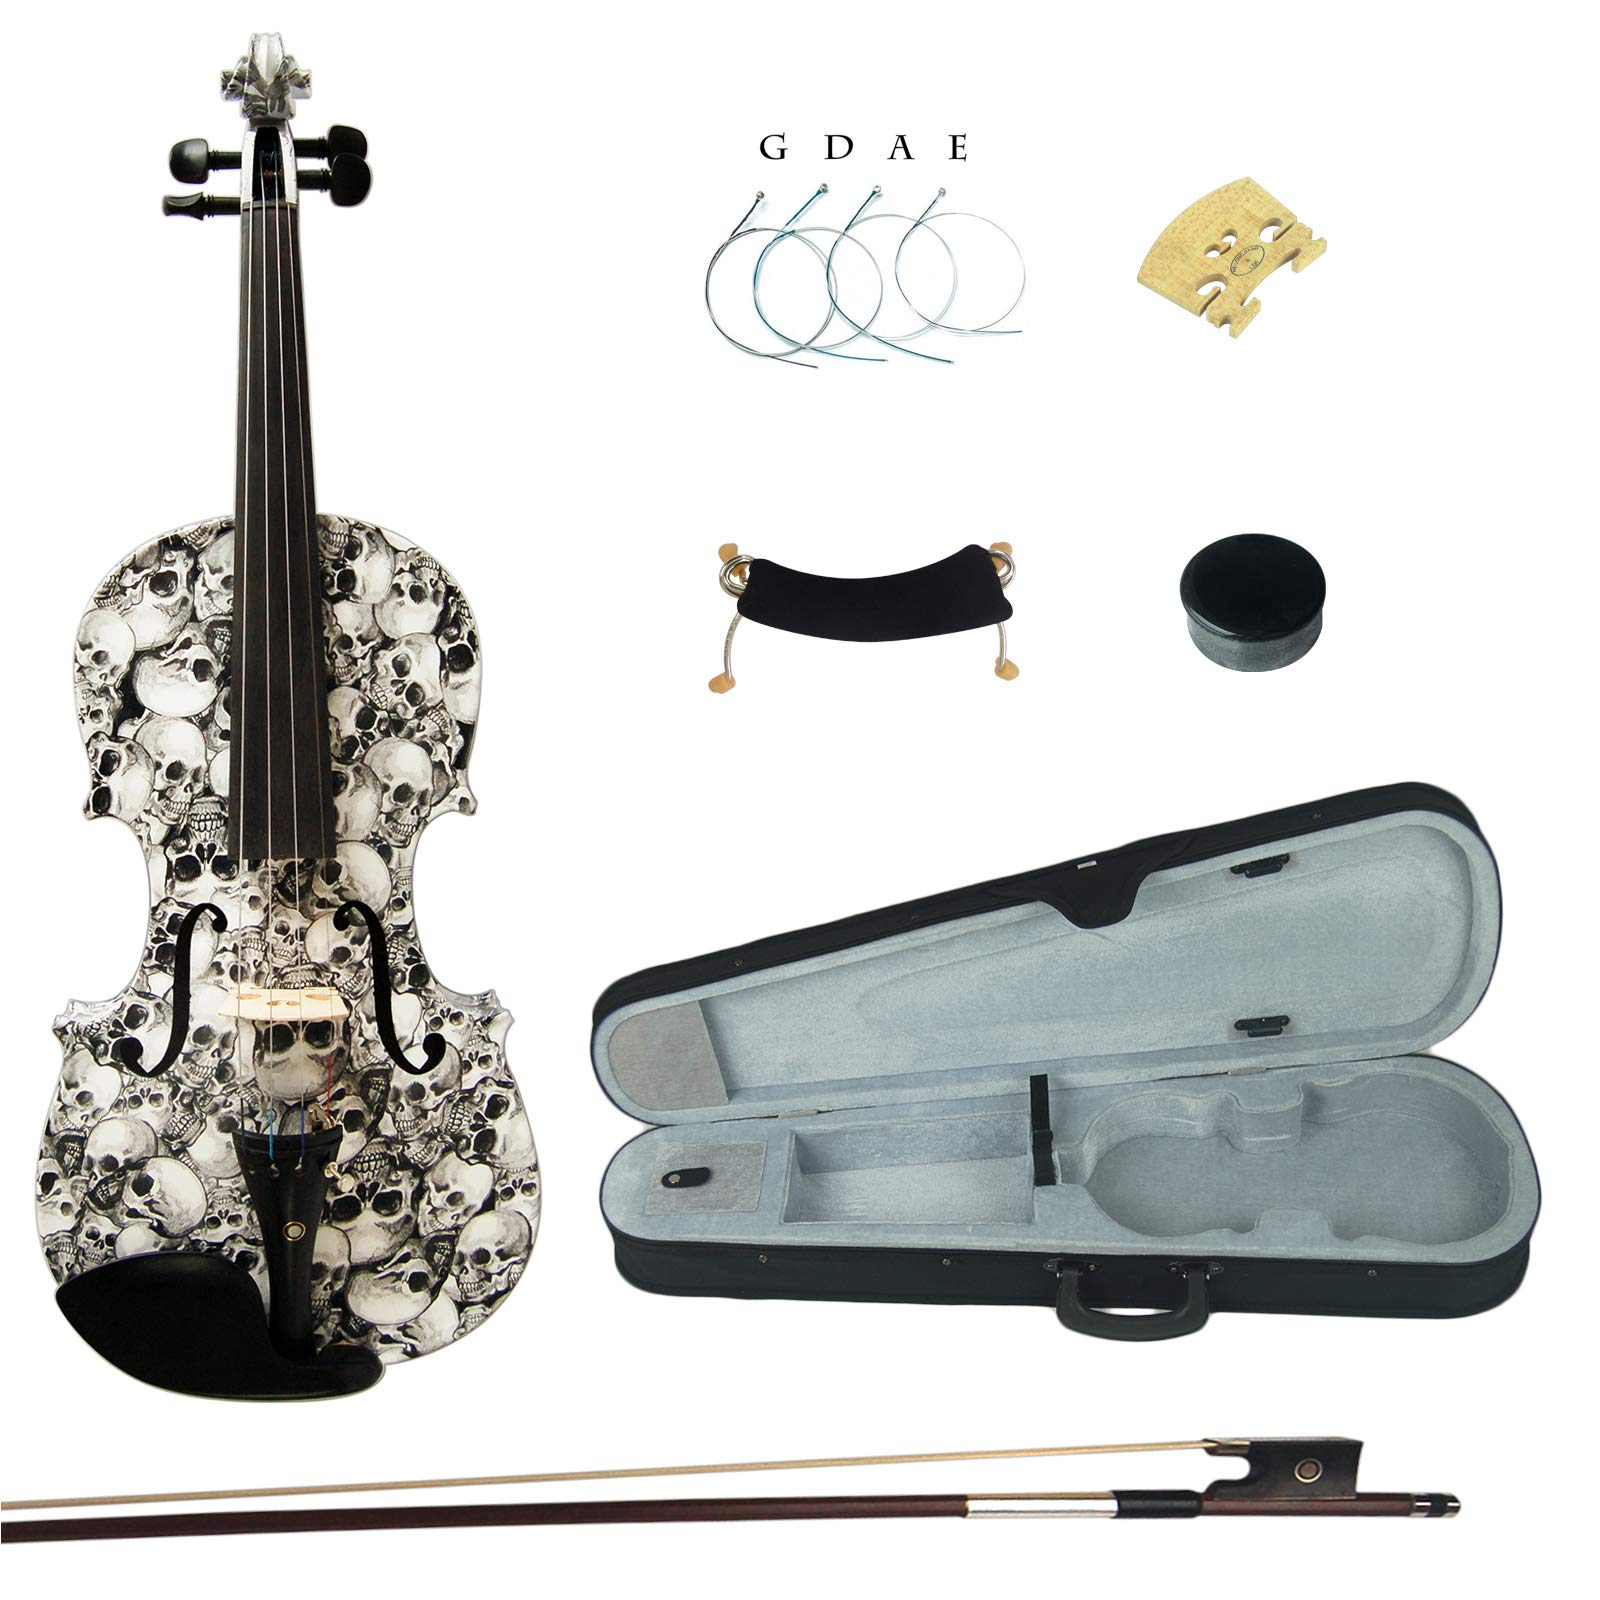 Kinglos 4/4 Black White Skull Colored Ebony Fitted Solid Wood Violin Kit with Case, Shoulder Rest, Bow, Rosin, Extra Bridge and Strings Full Size (HB1312) by Kinglos